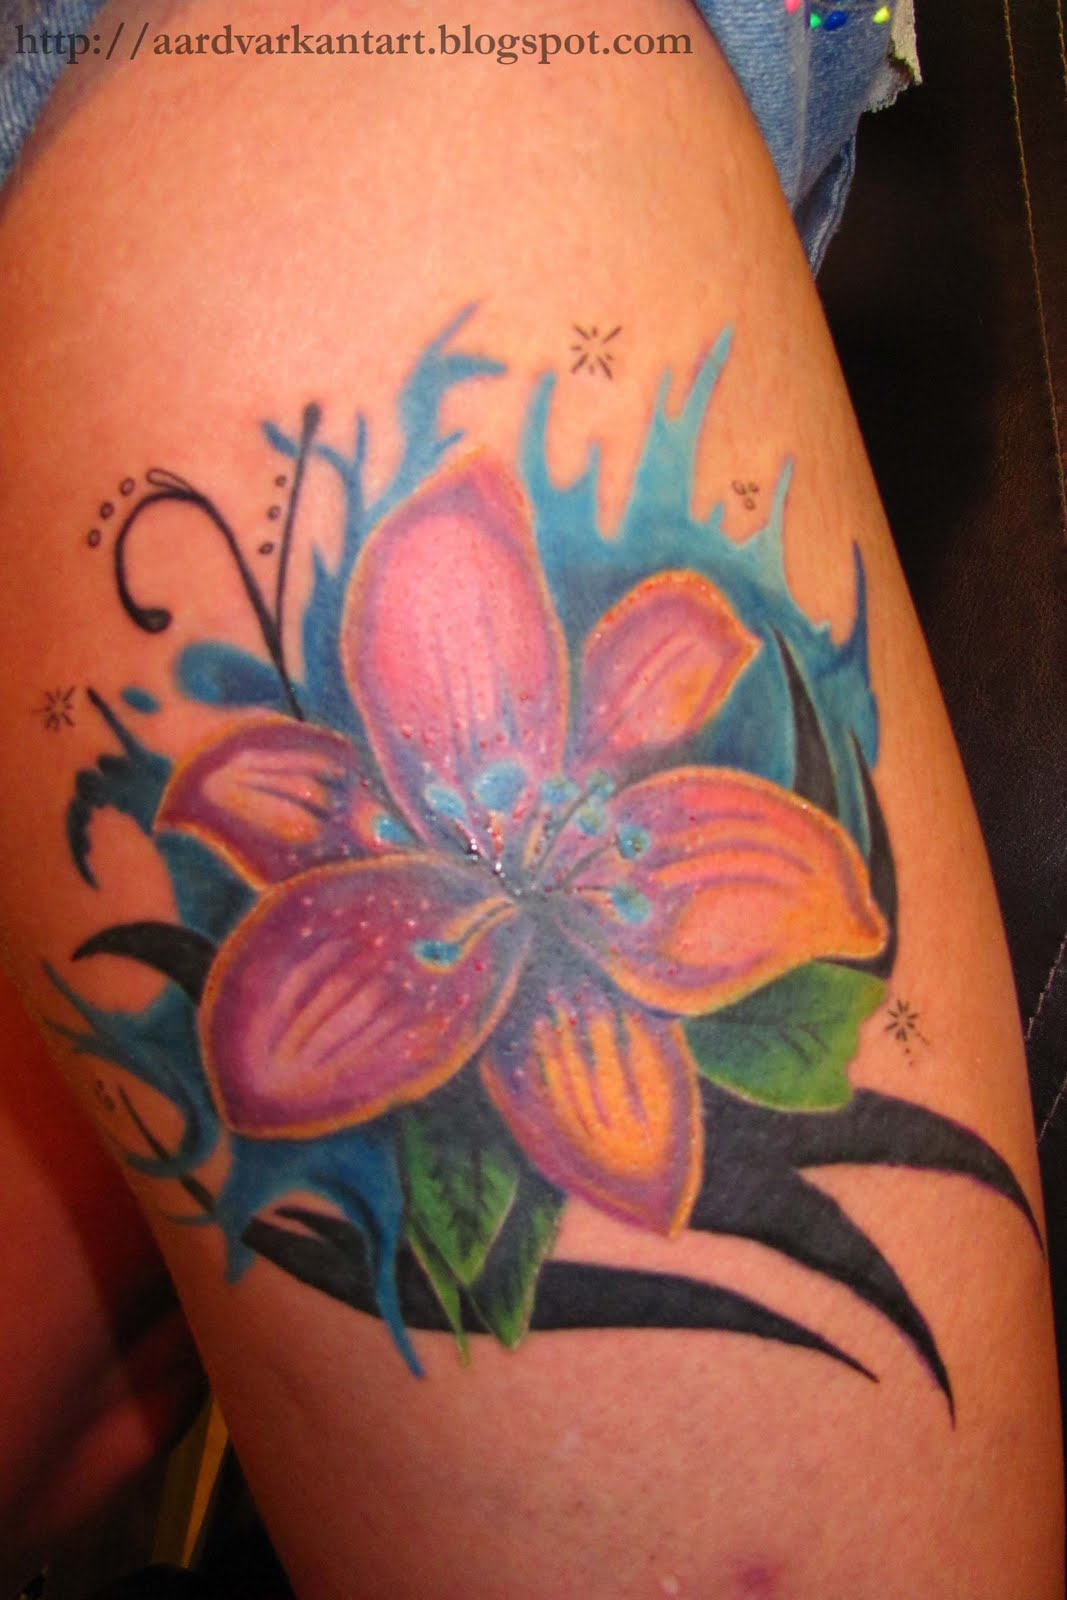 Flower Tattoo Designs Hip: Aardvark Ant Art: Flowers